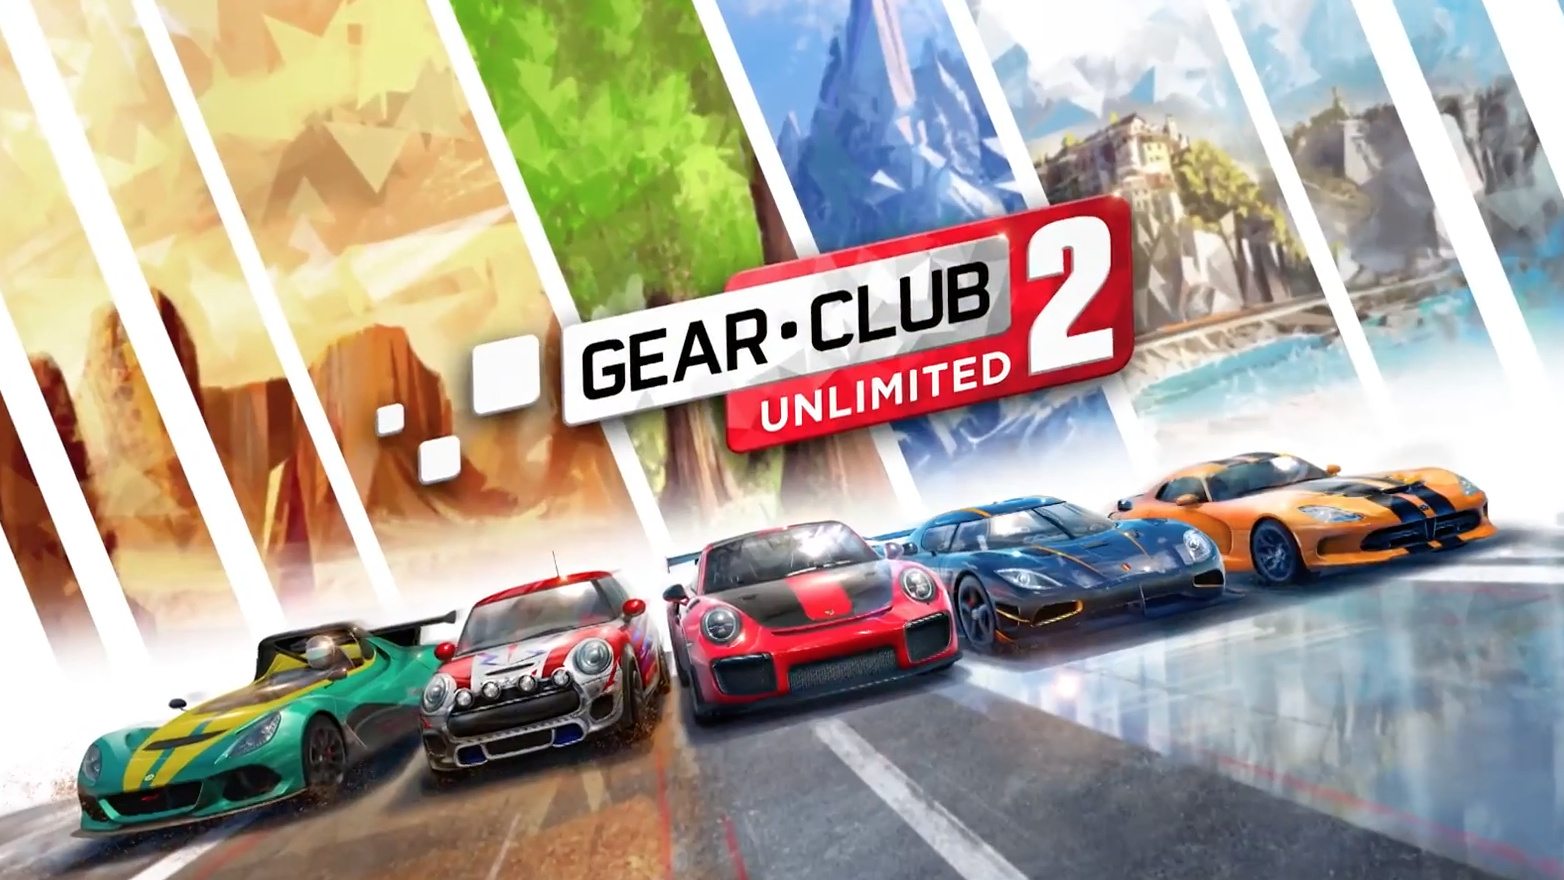 gear club unlimited 2 revealed exclusively for nintendo switch nintendo life. Black Bedroom Furniture Sets. Home Design Ideas